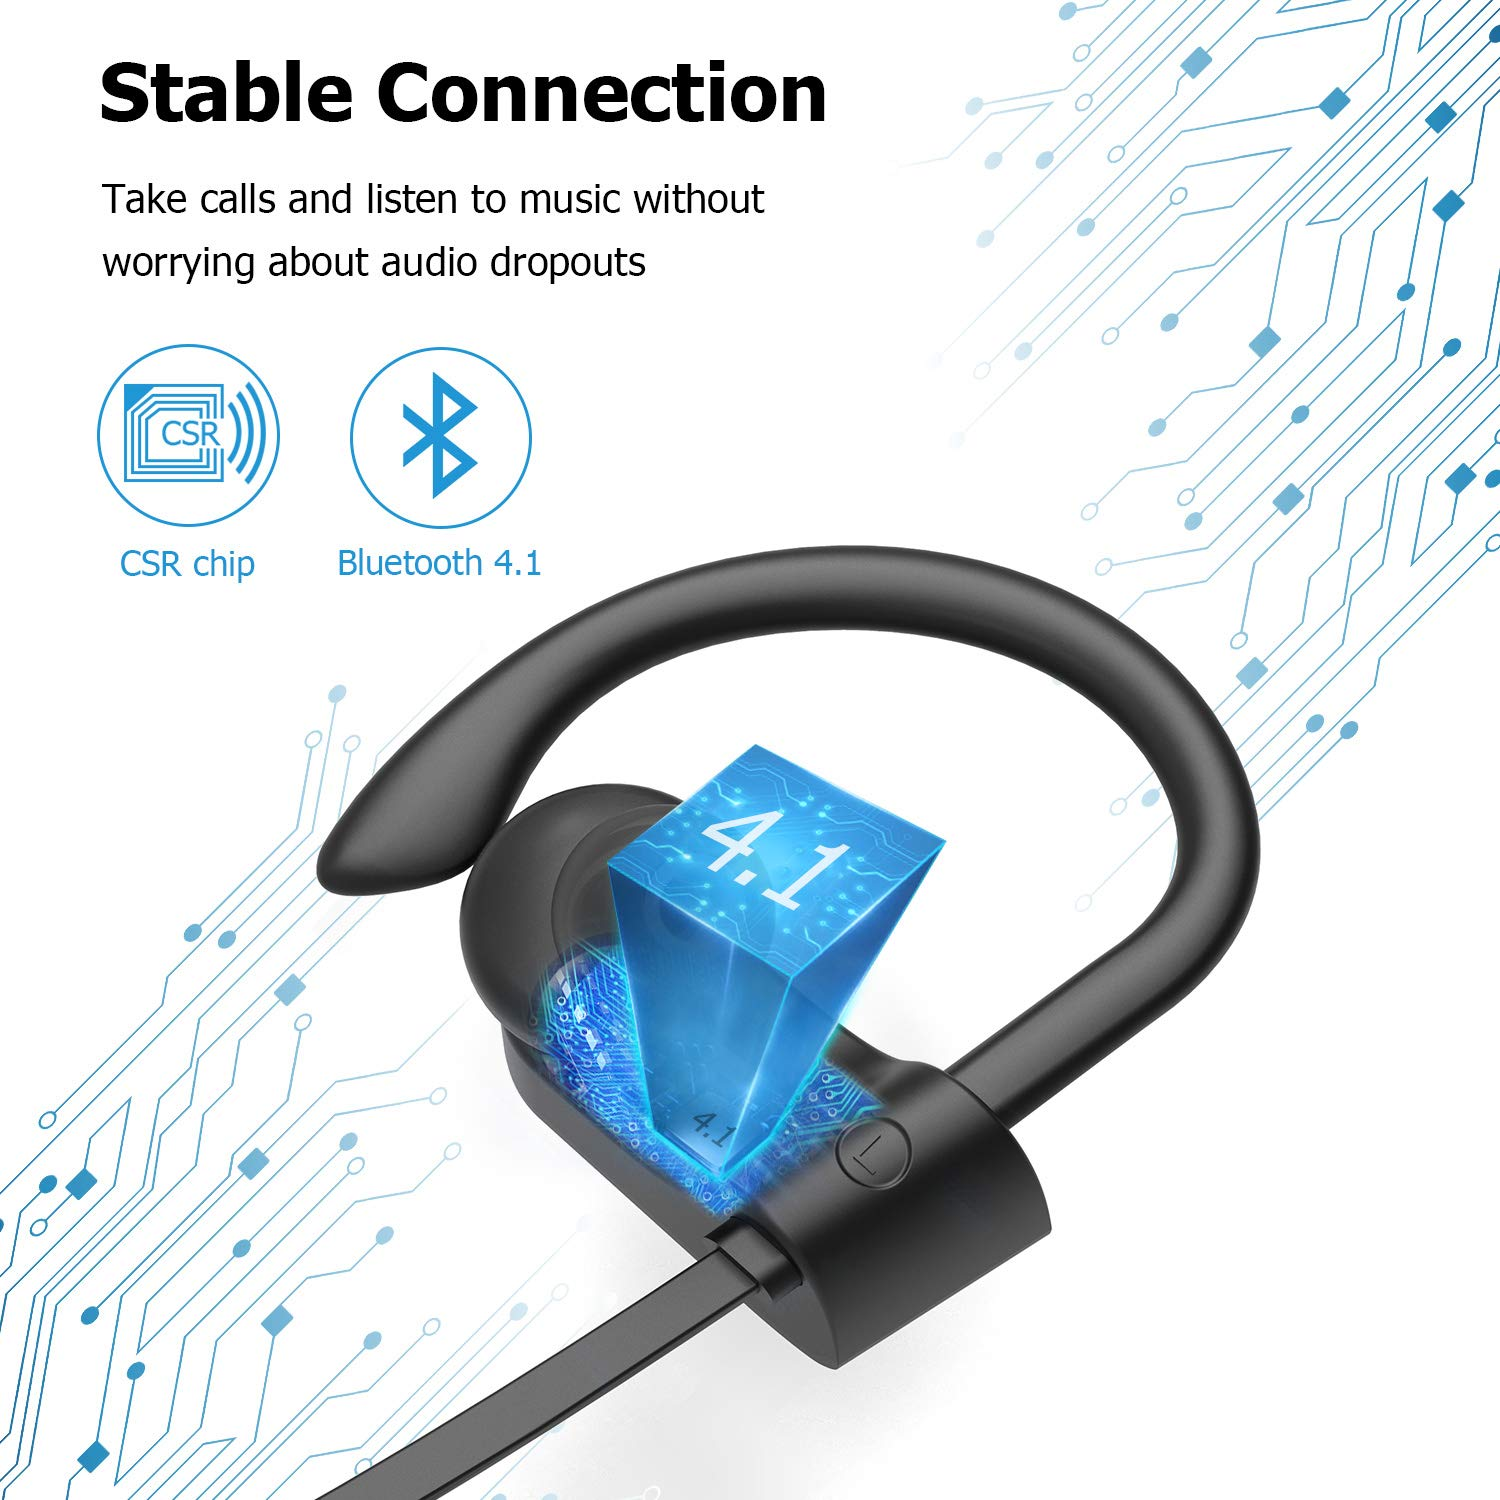 Bluetooth Headphones, LETSCOM Wireless Earbuds IPX7 Waterproof Noise Cancelling Headsets, Richer Bass & HiFi Stereo Sports Earphones 8 Hours Playtime Running Headphones with Travel Case by LETSCOM (Image #3)